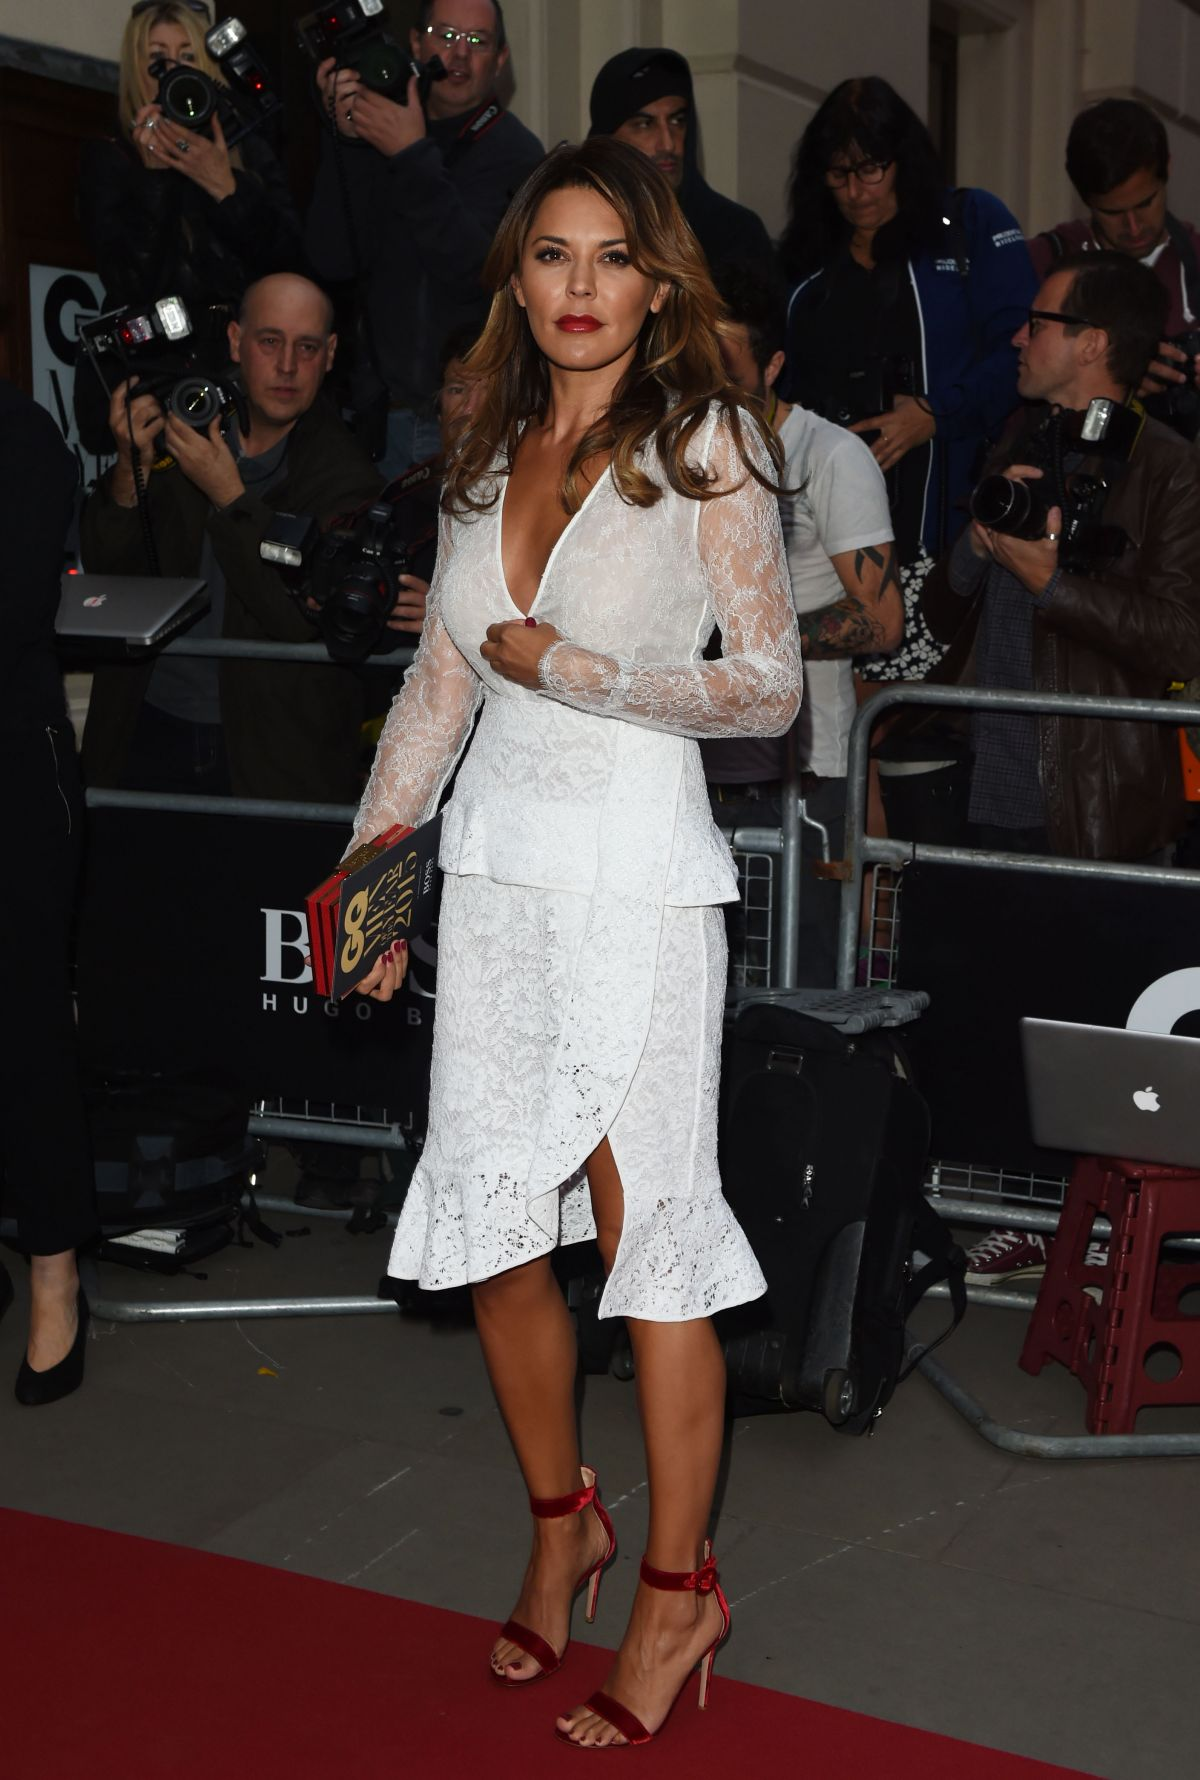 DANIELLE LINEKER at GQ Men of the Year 2015 Awards in London